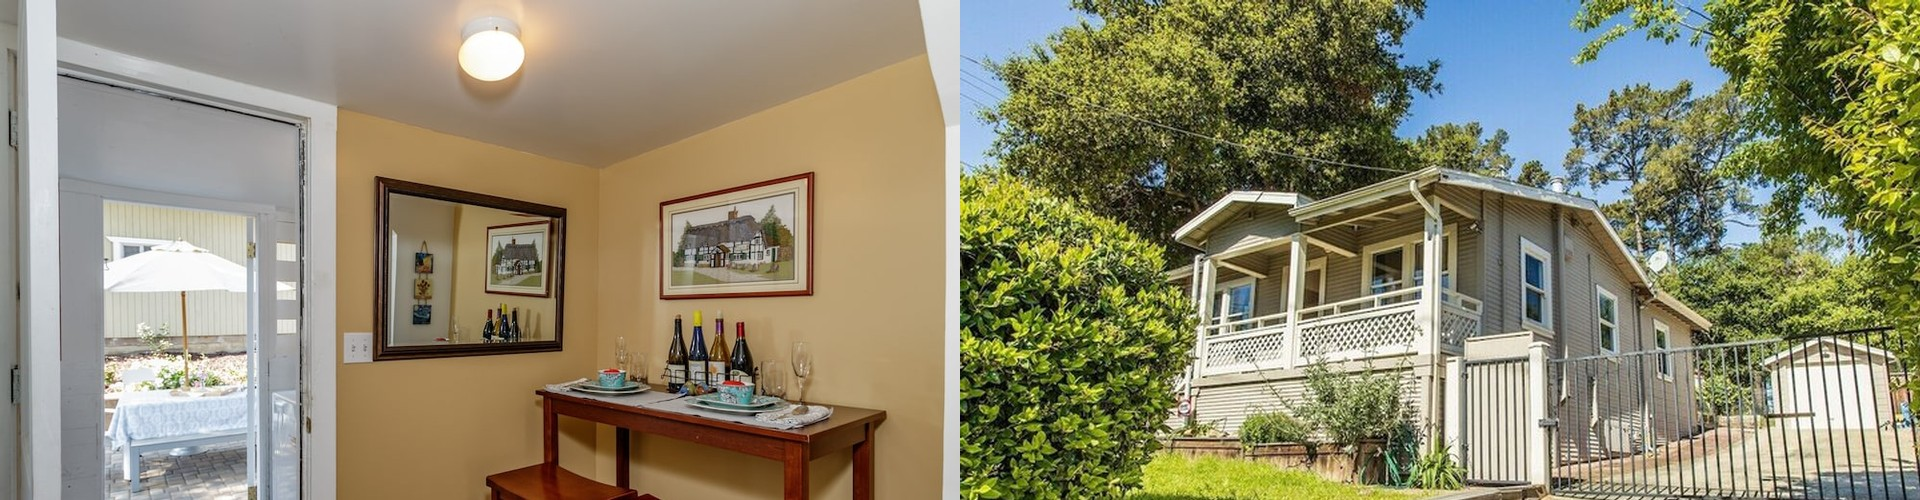 Tags:Hilton Oakland Airport Oakland CA Hotel,Hilton Oakland Airport  TripAdvisor,Directions To Hilton Oakland Airport,Hampton Inn Oakland  Airport Hotel In ...